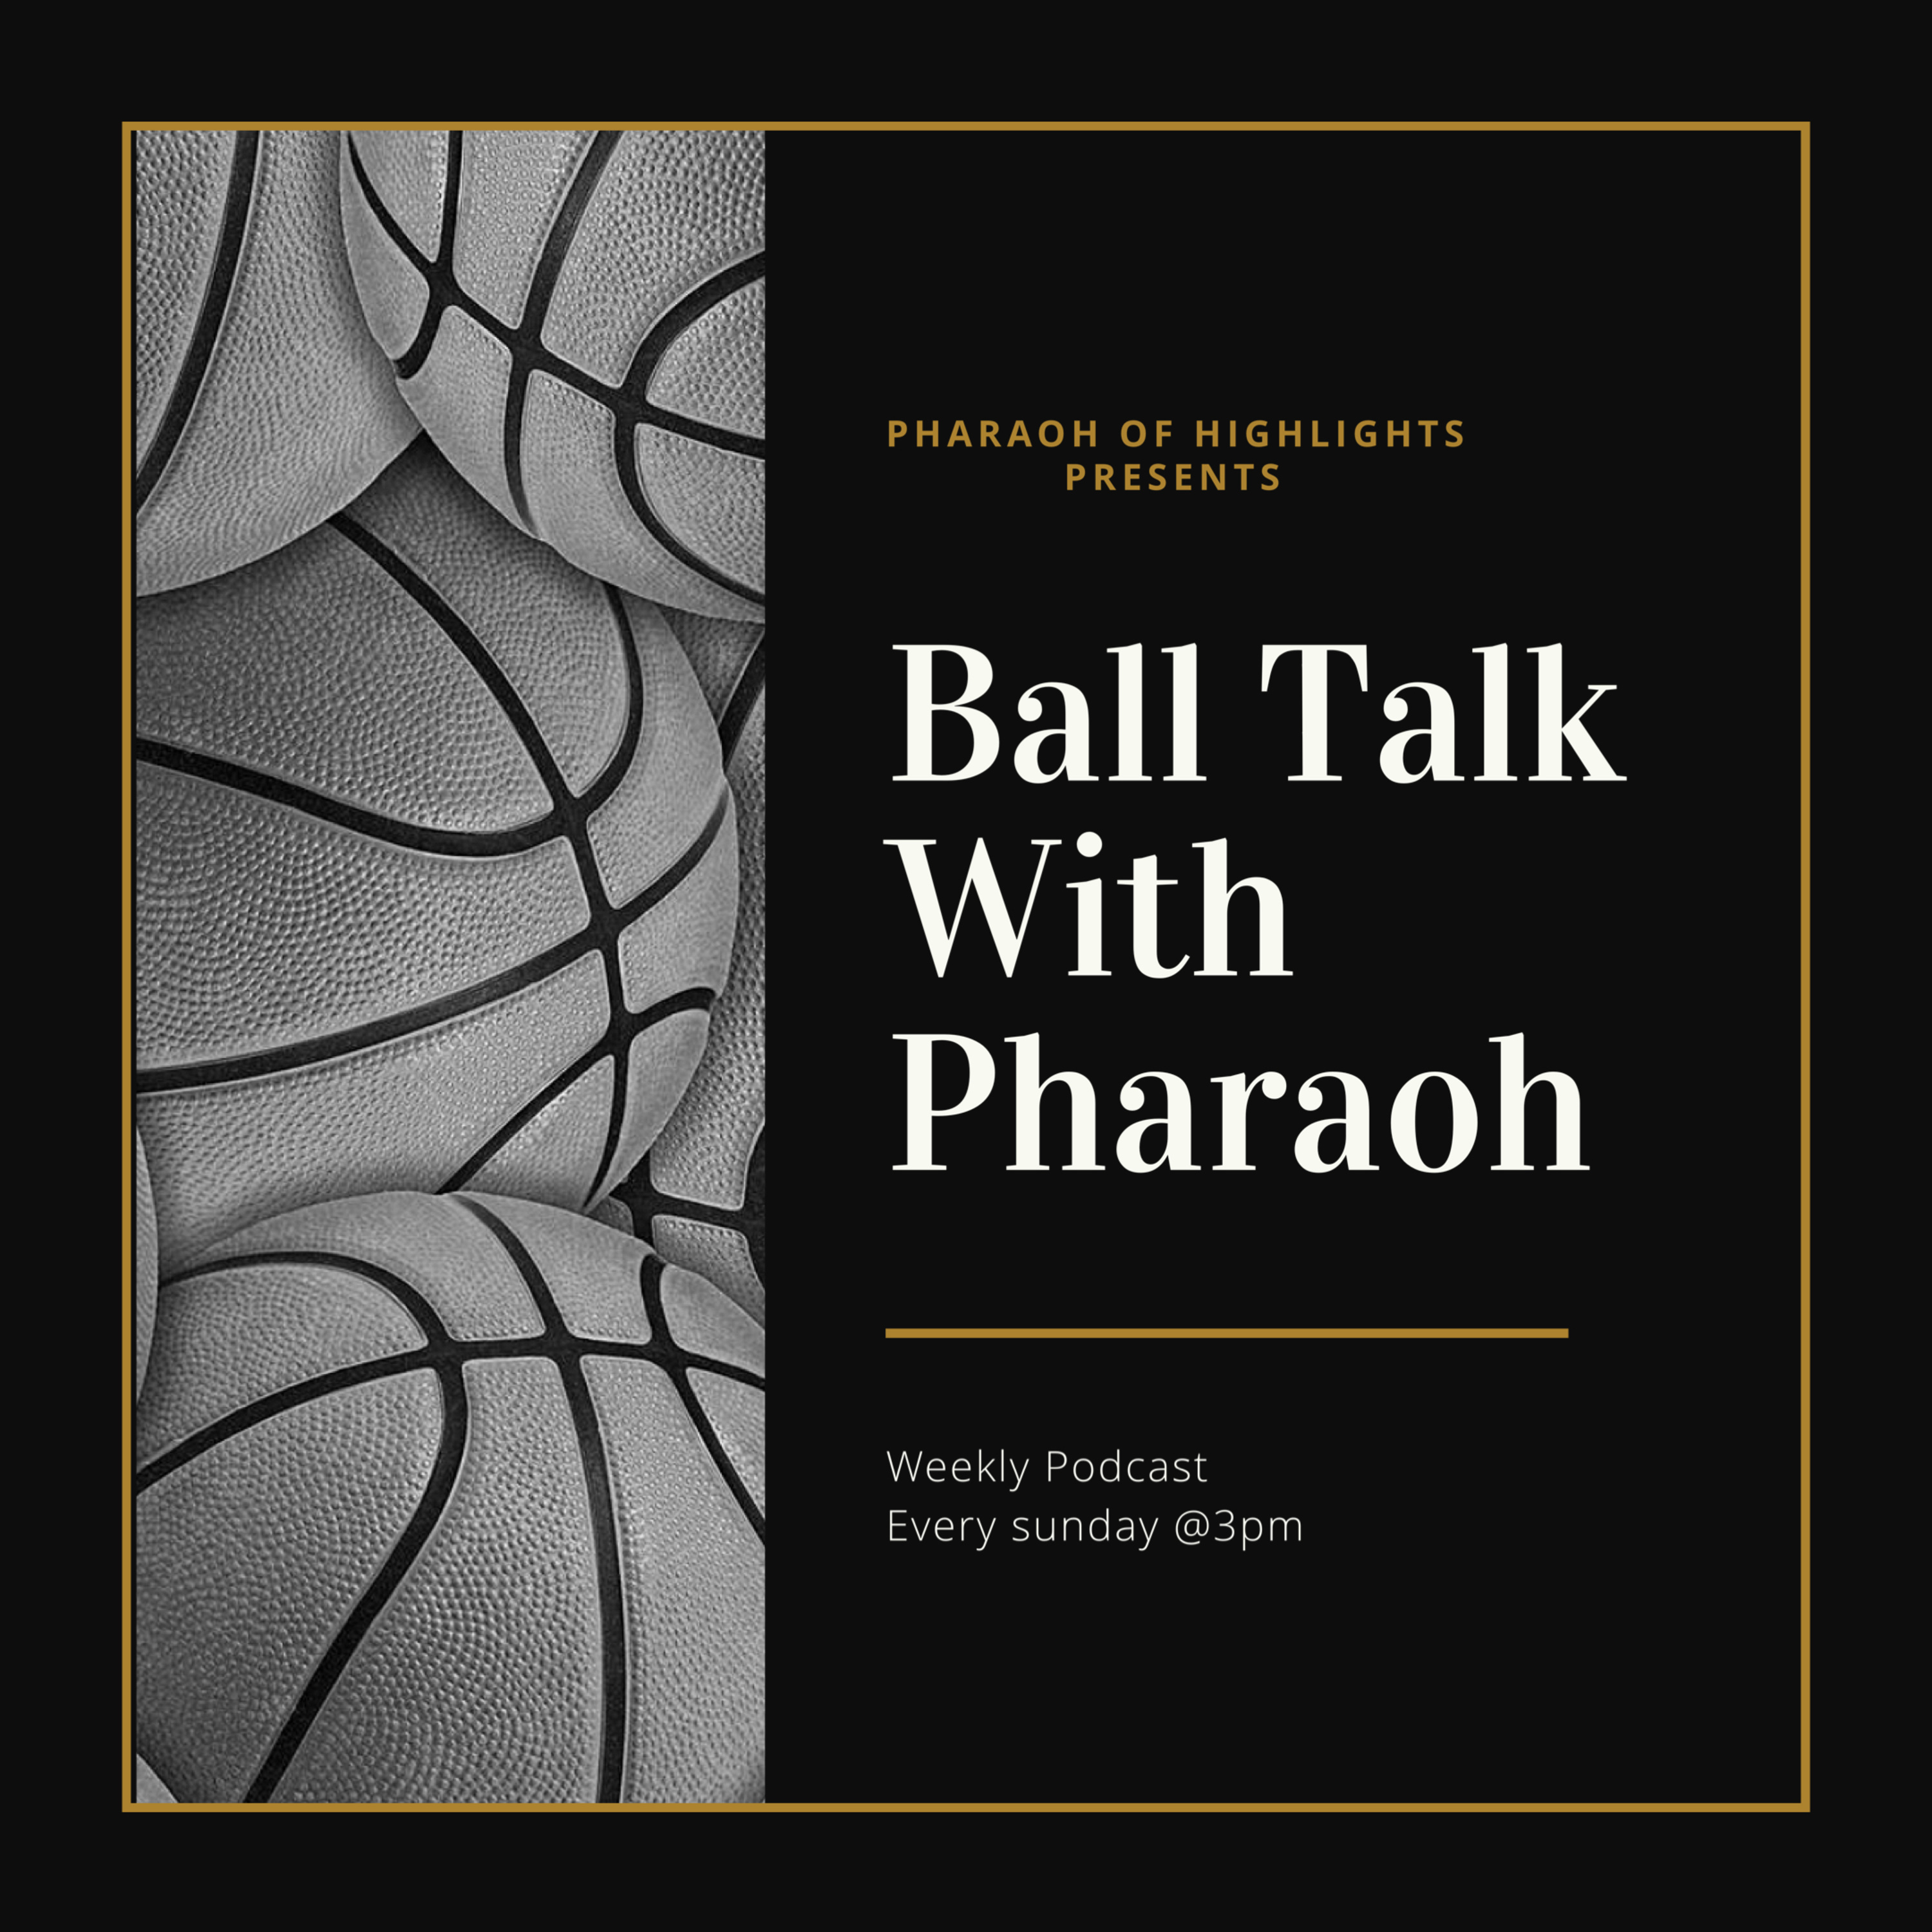 Introduction to Ball Talk With Pharaoh